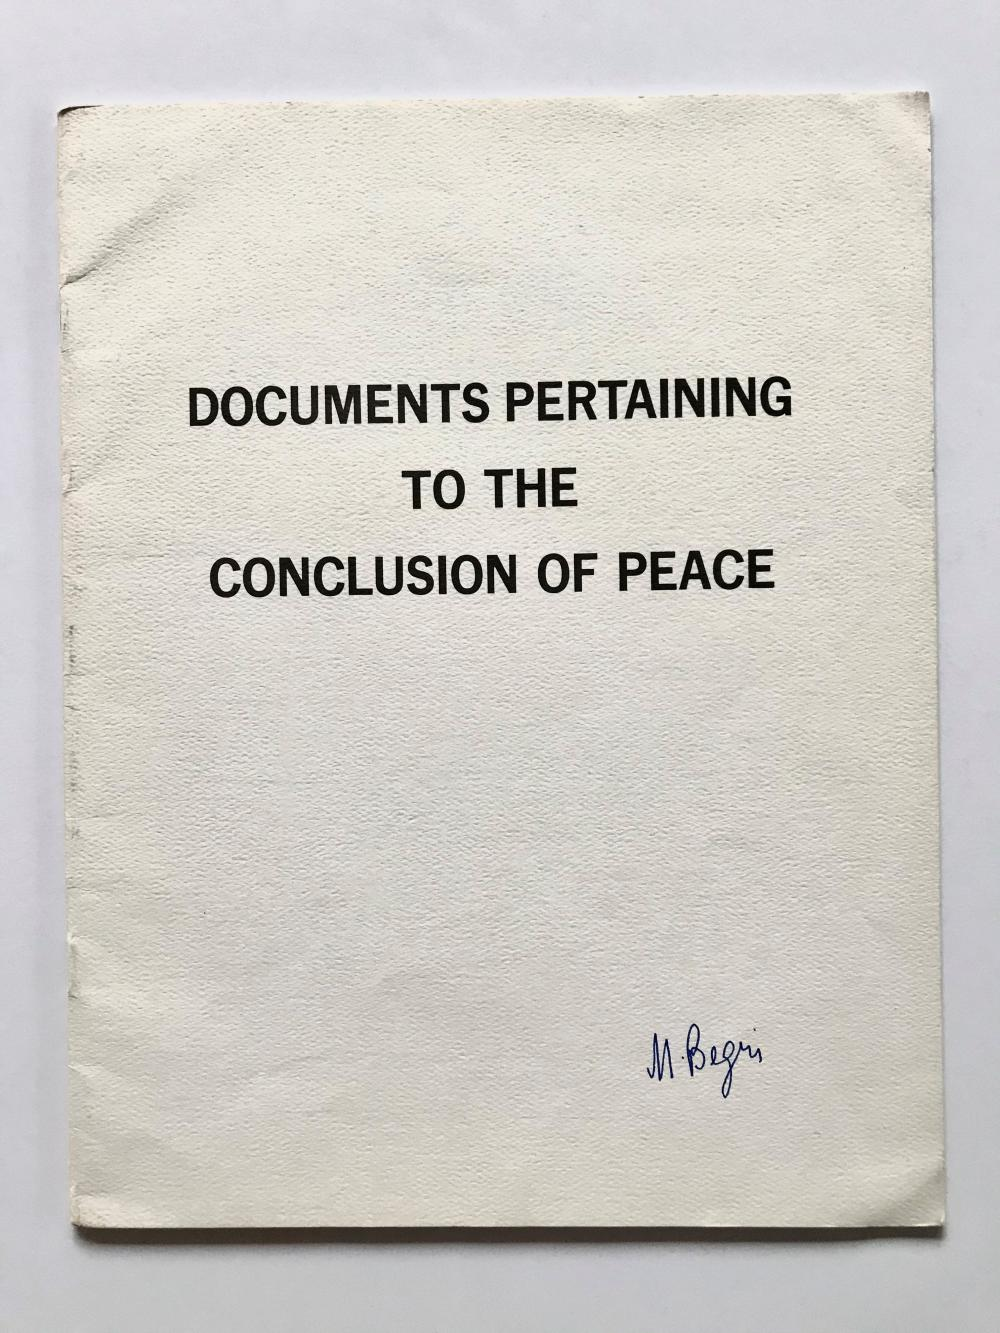 """Begin Signs Camp David """"Documents Pertaining to the Conclusion of Peace"""""""